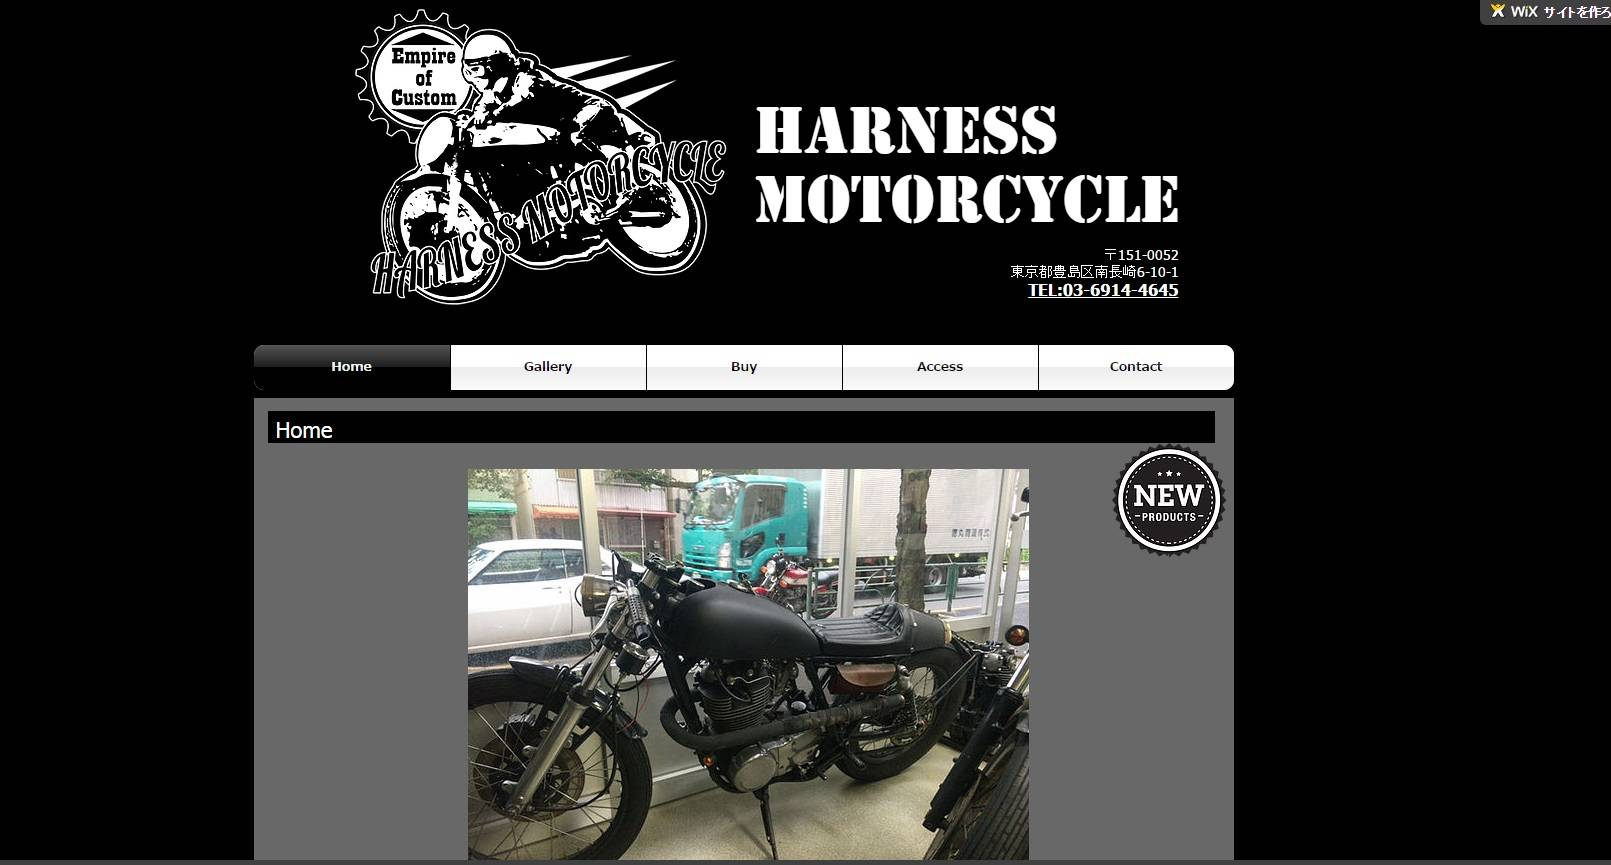 HARNESS MOTOR CYCLE